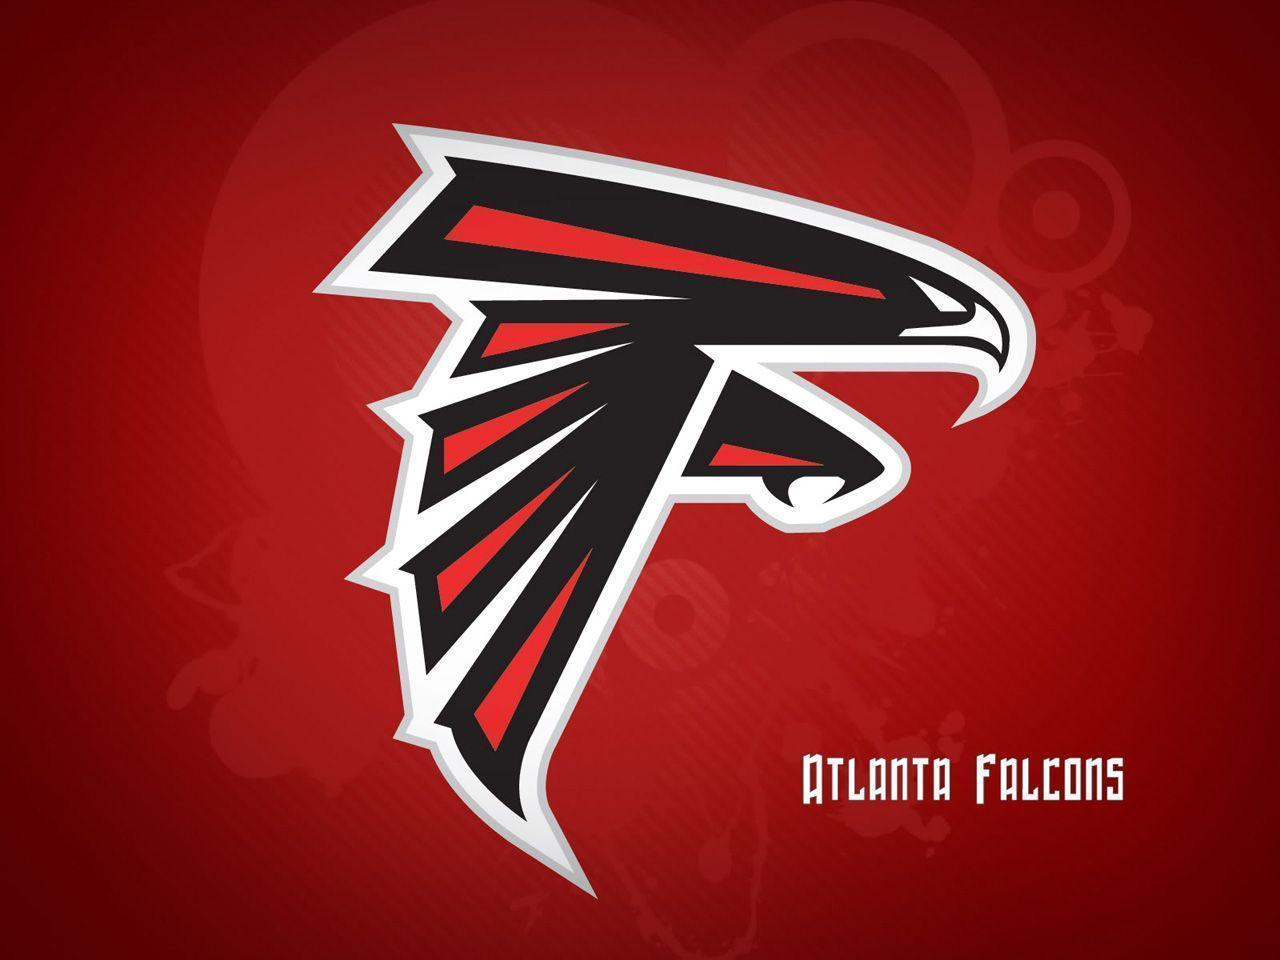 Atlanta Falcons HD Image For Desktop Download